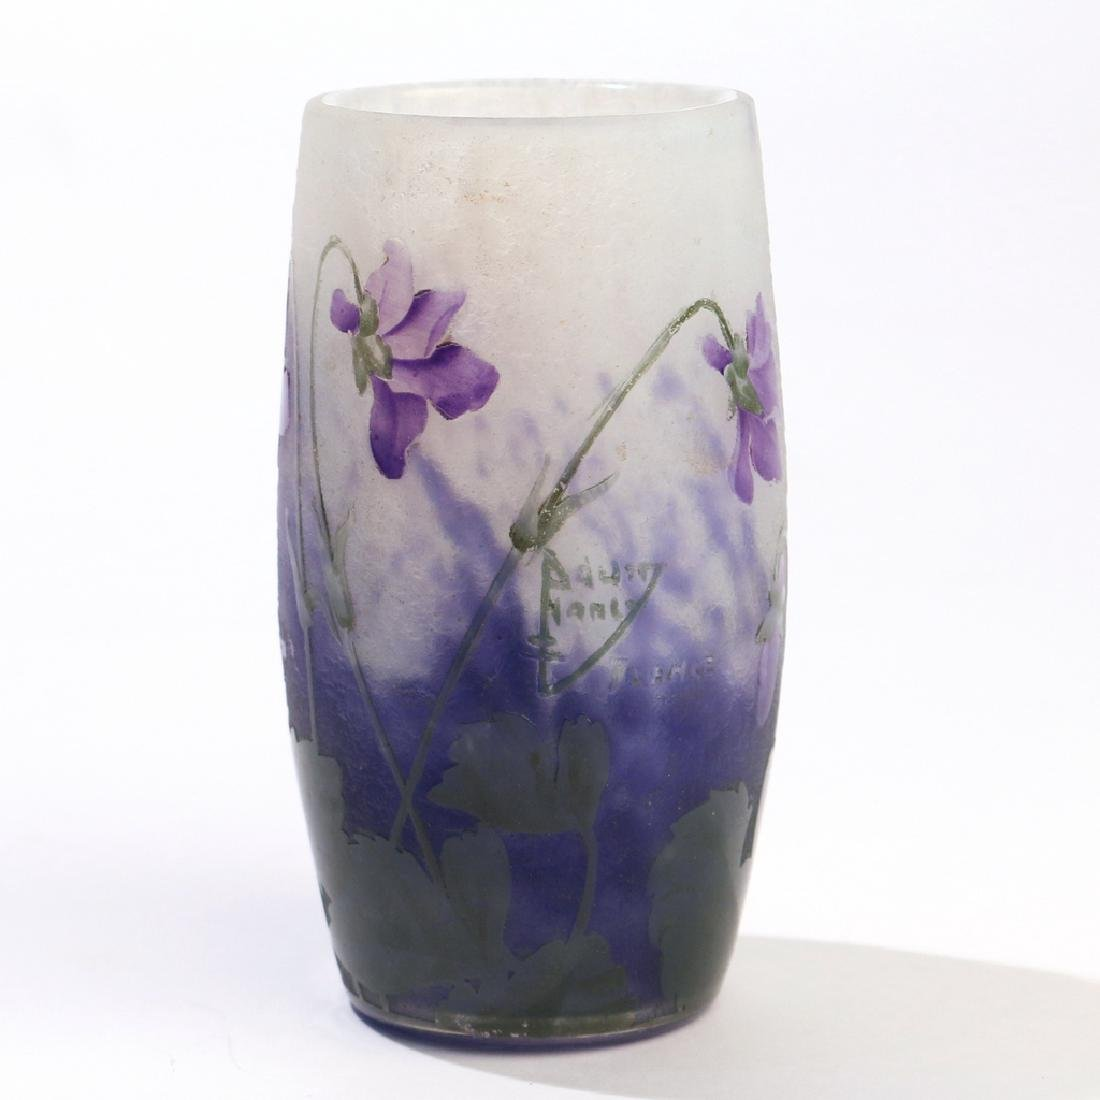 DAUM NANCY CAMEO GLASS VASE